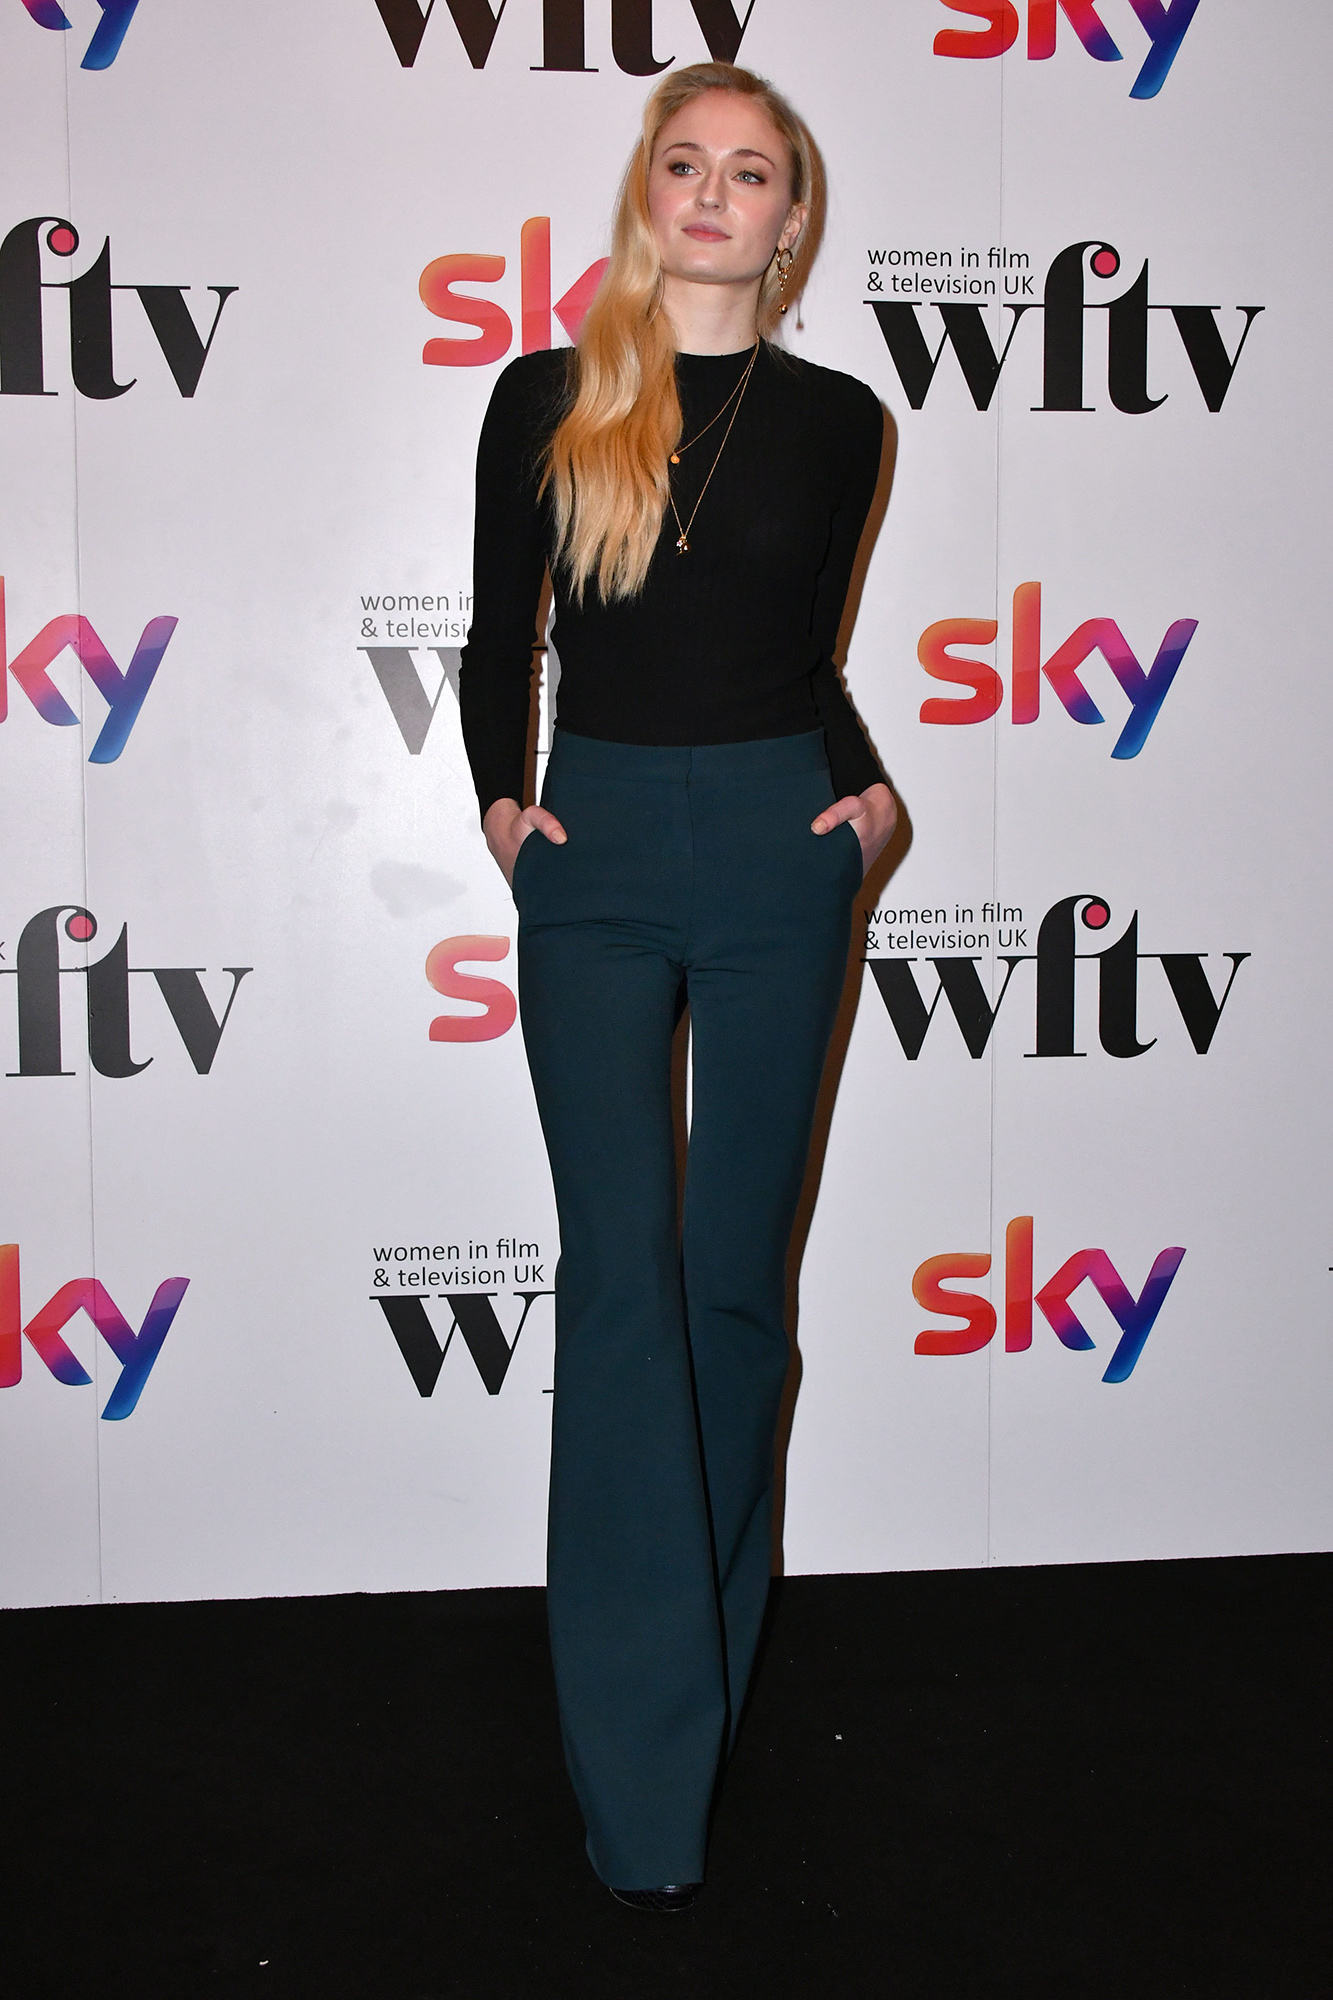 Women in Film and Television Awards, London, UK - 02 Dec 2016